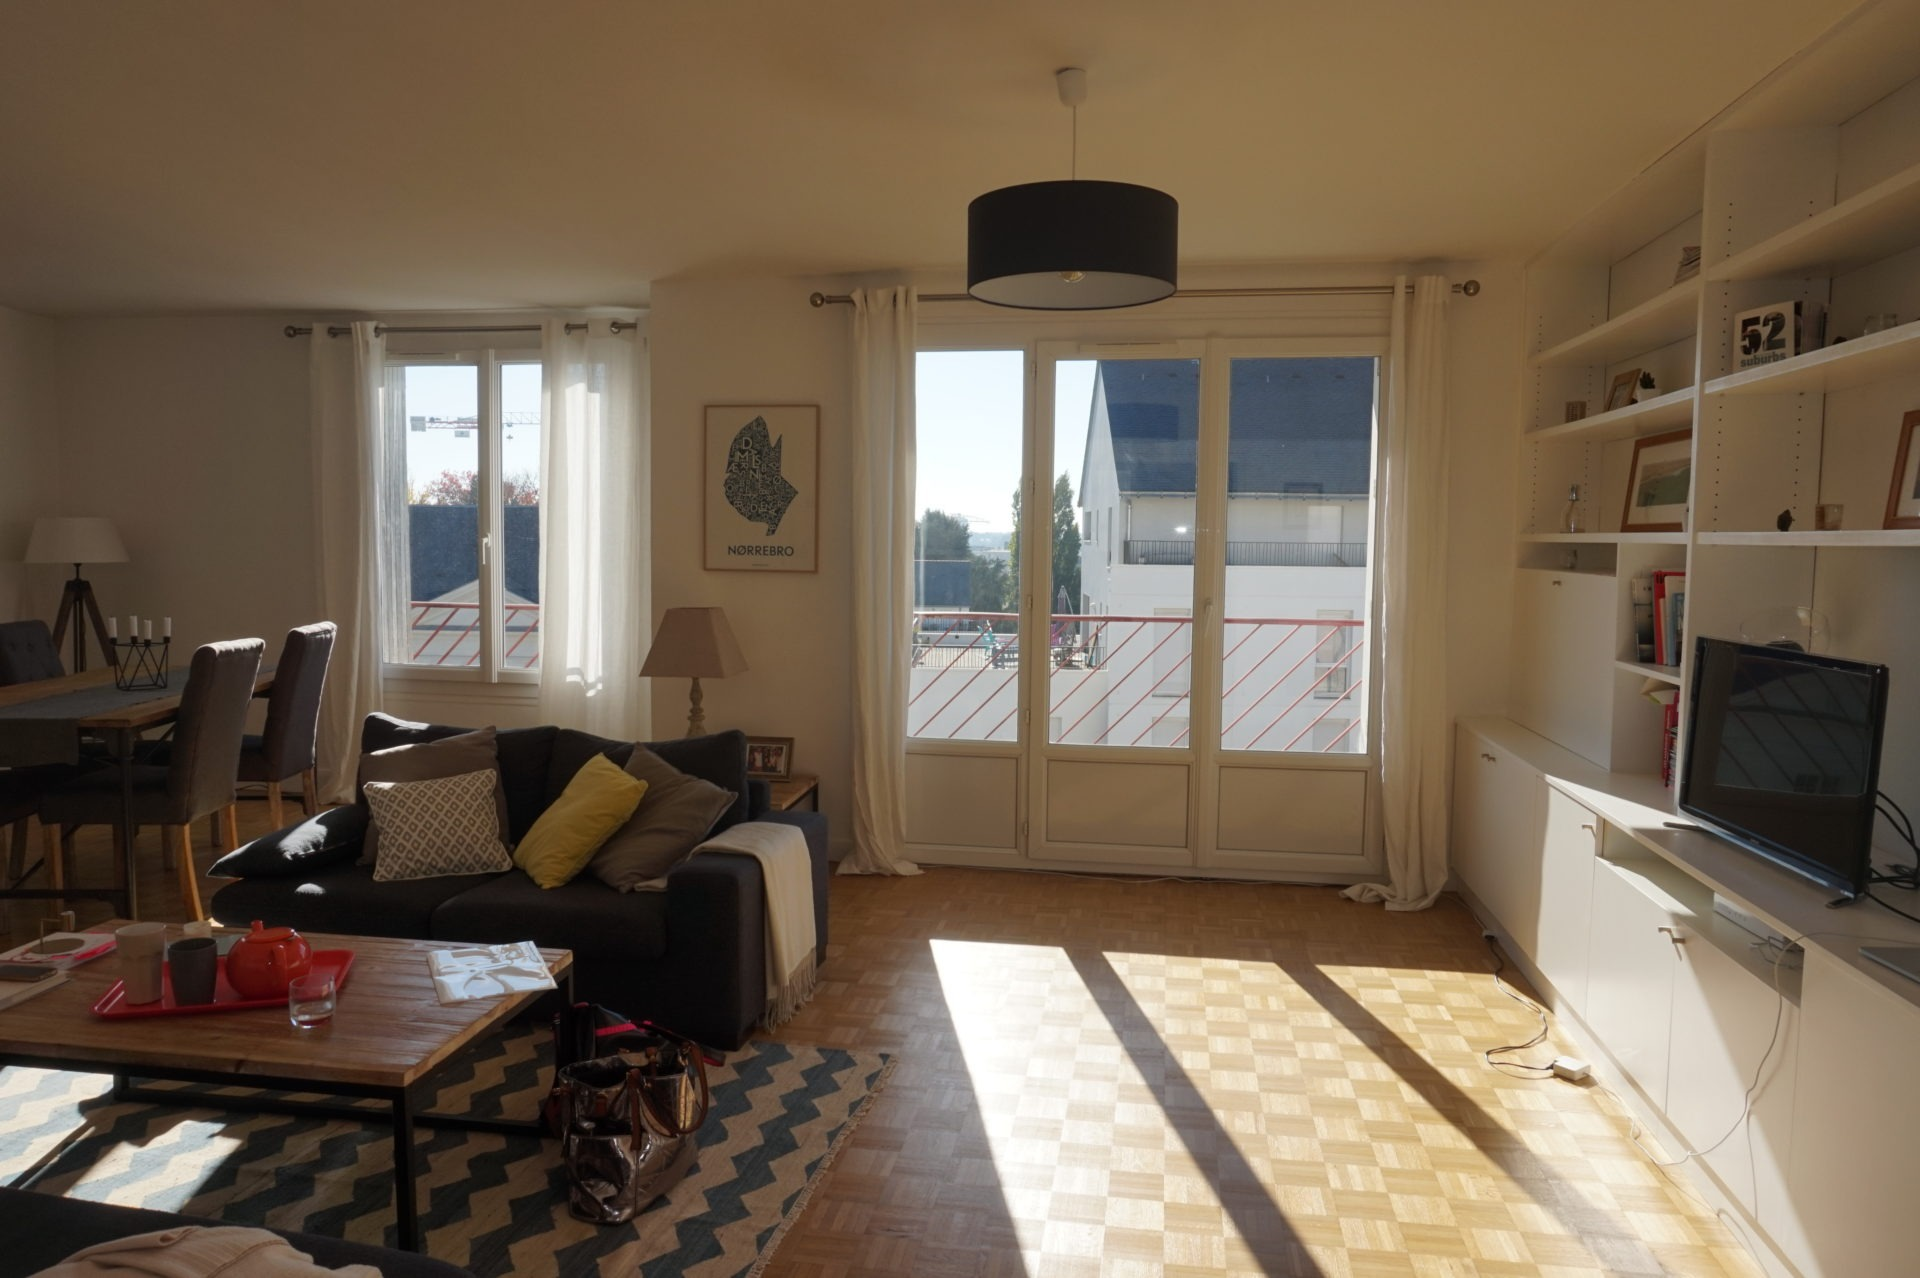 transformation d'un appartement à nantes par lydie pineau kiosque deco